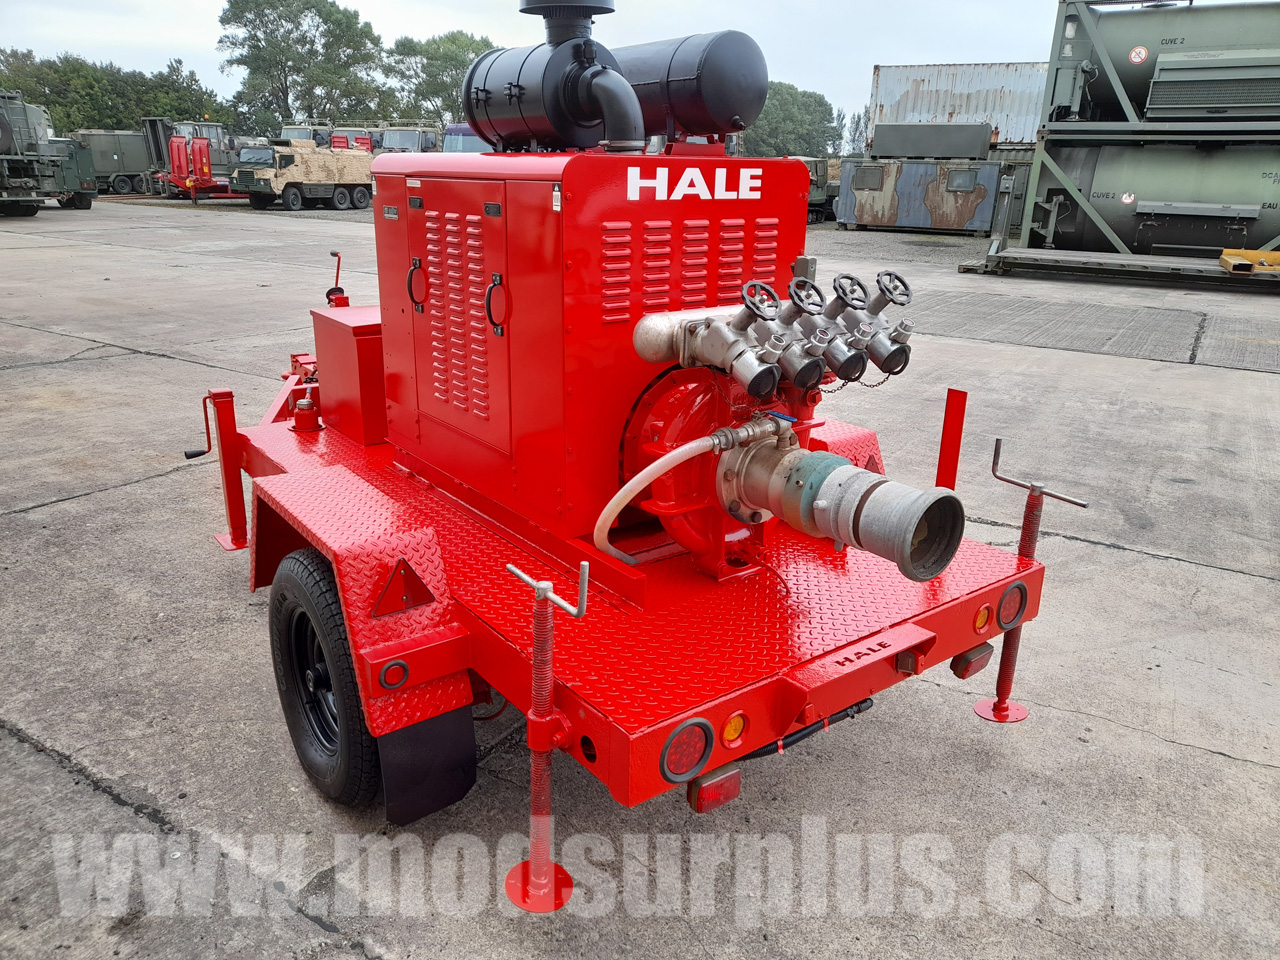 military vehicles for sale - Hale Trailered High Capacity Fire Pump